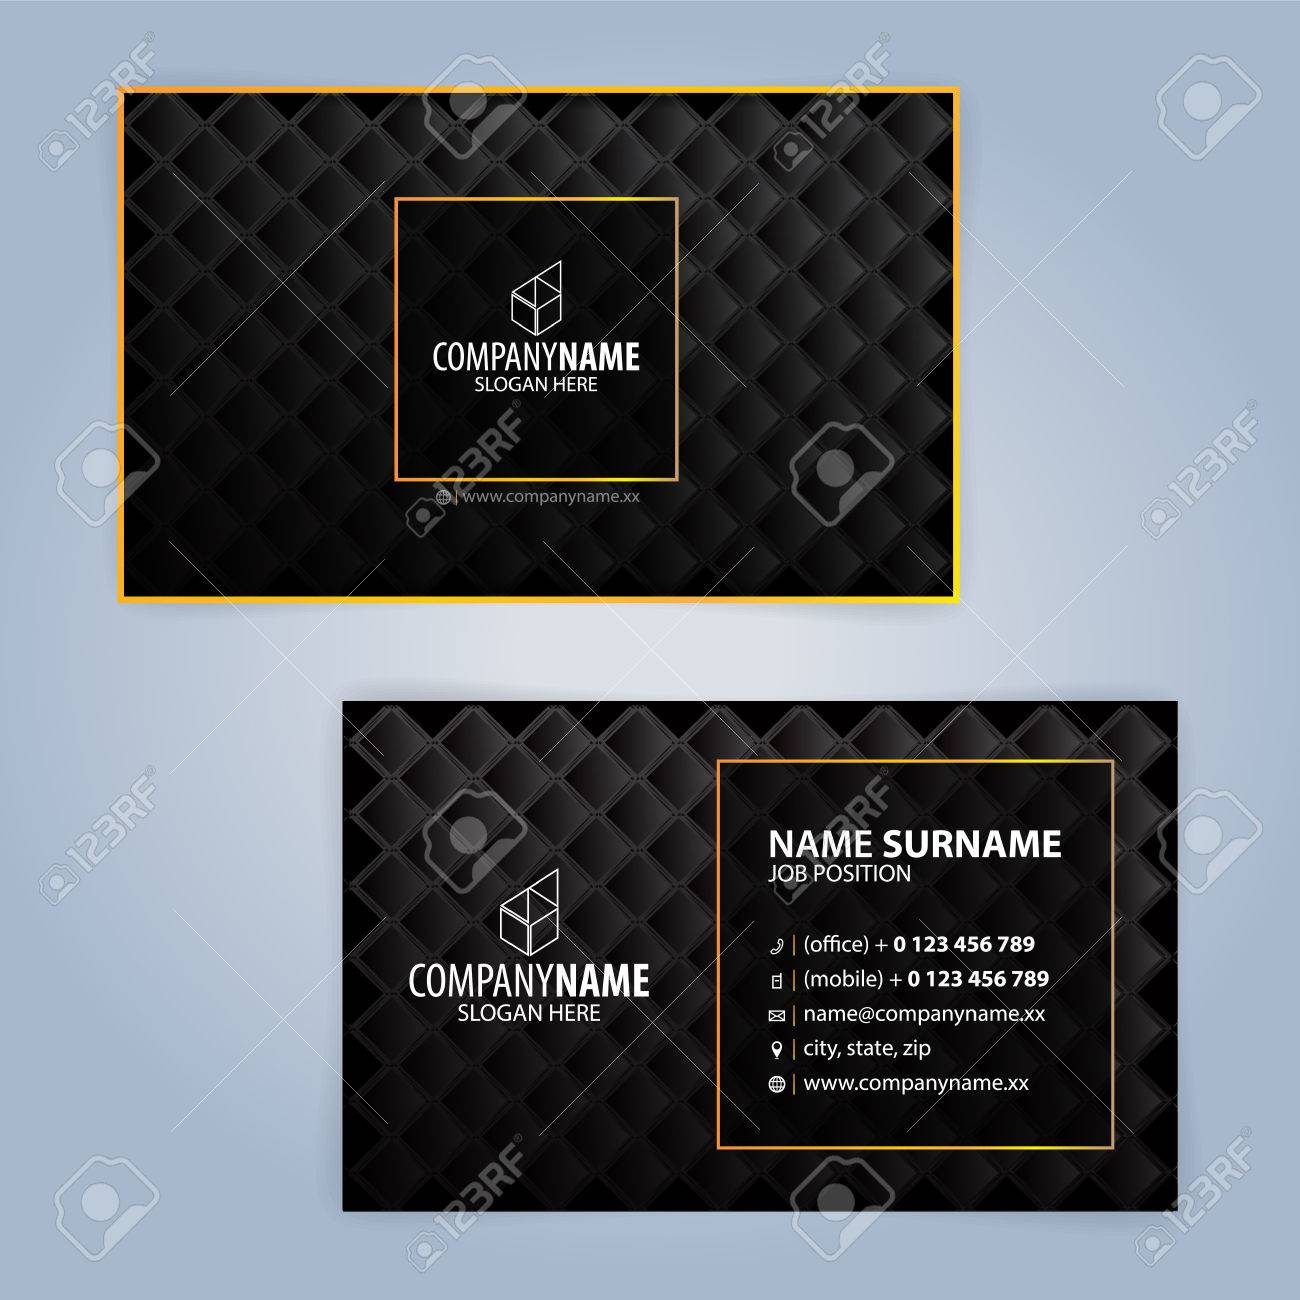 Business card design templates luxury graphic design royalty free banco de imagens business card design templates luxury graphic design reheart